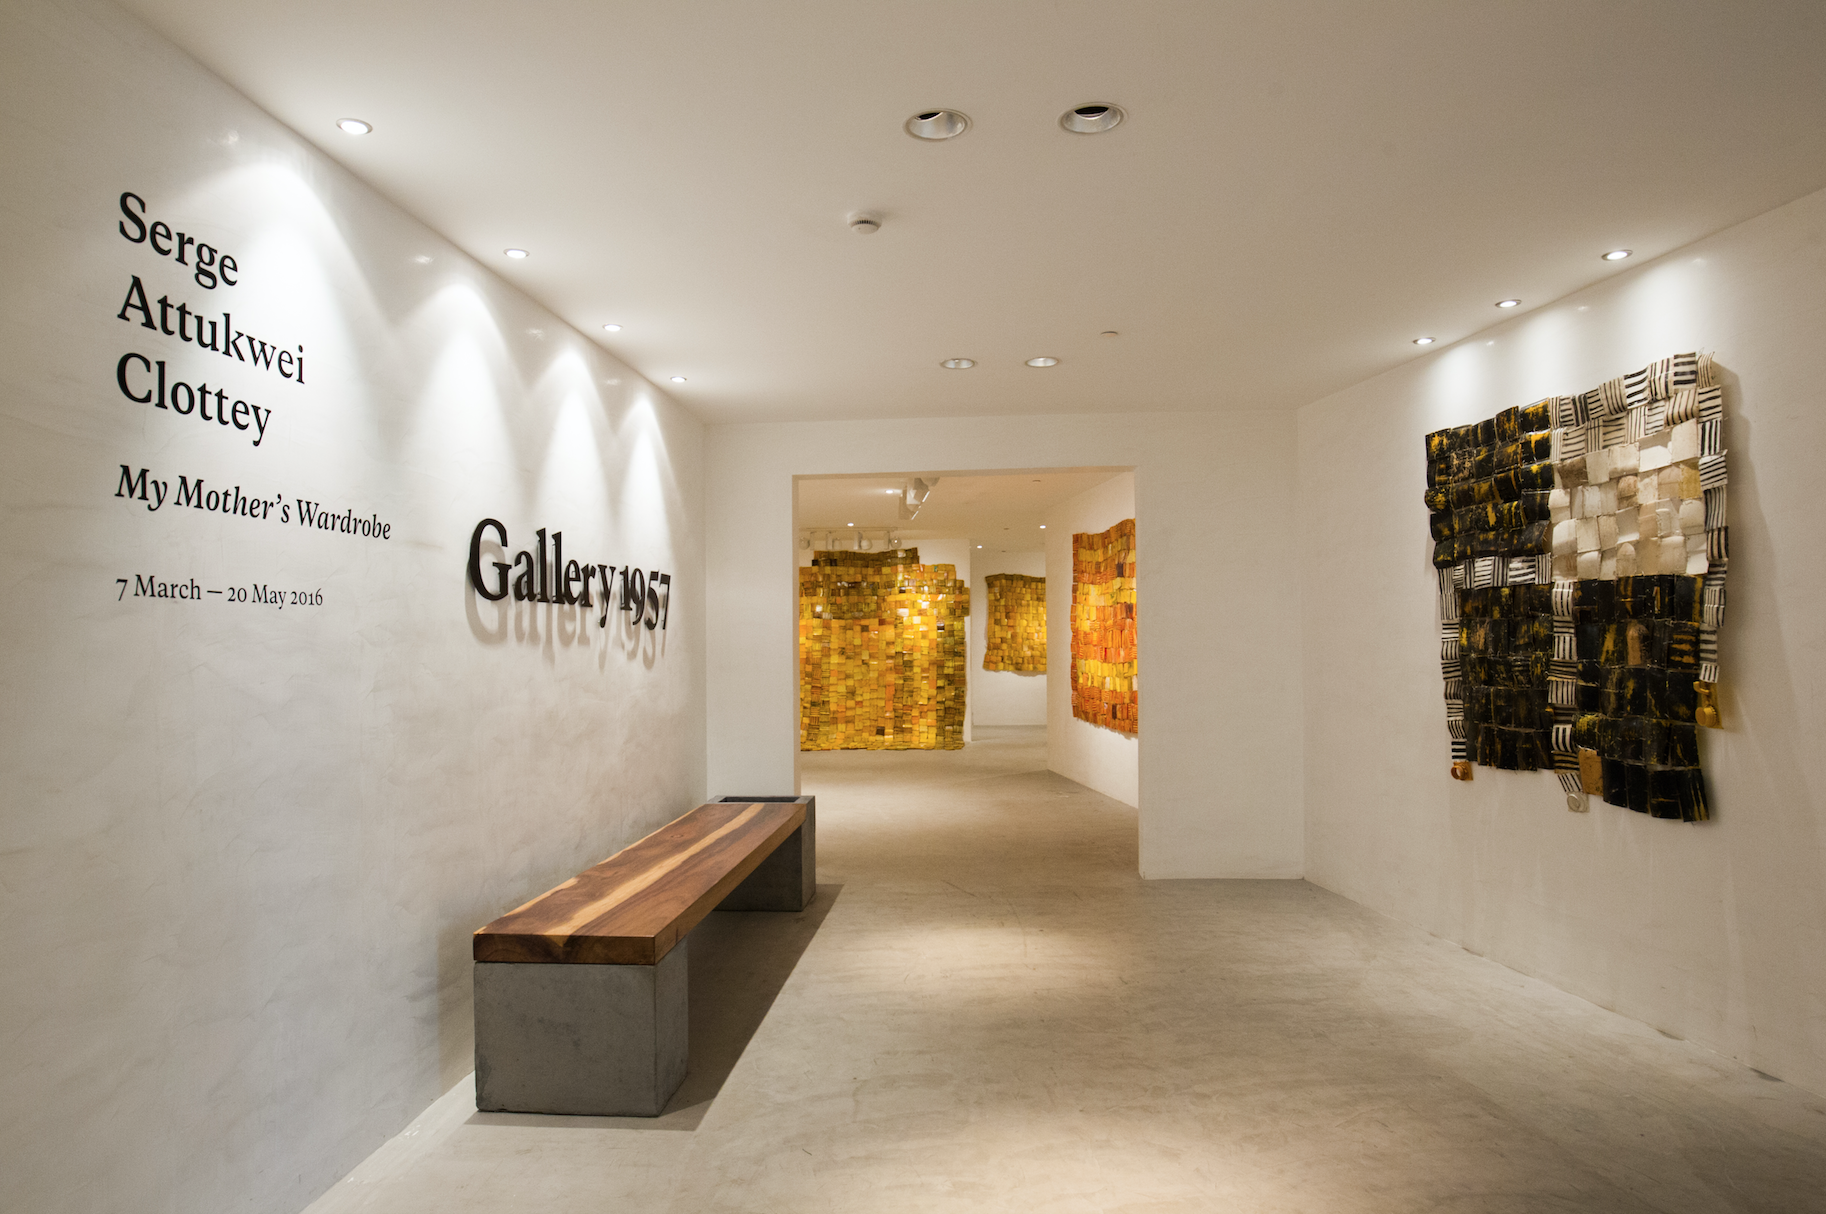 Go contemporary at Gallery 1957